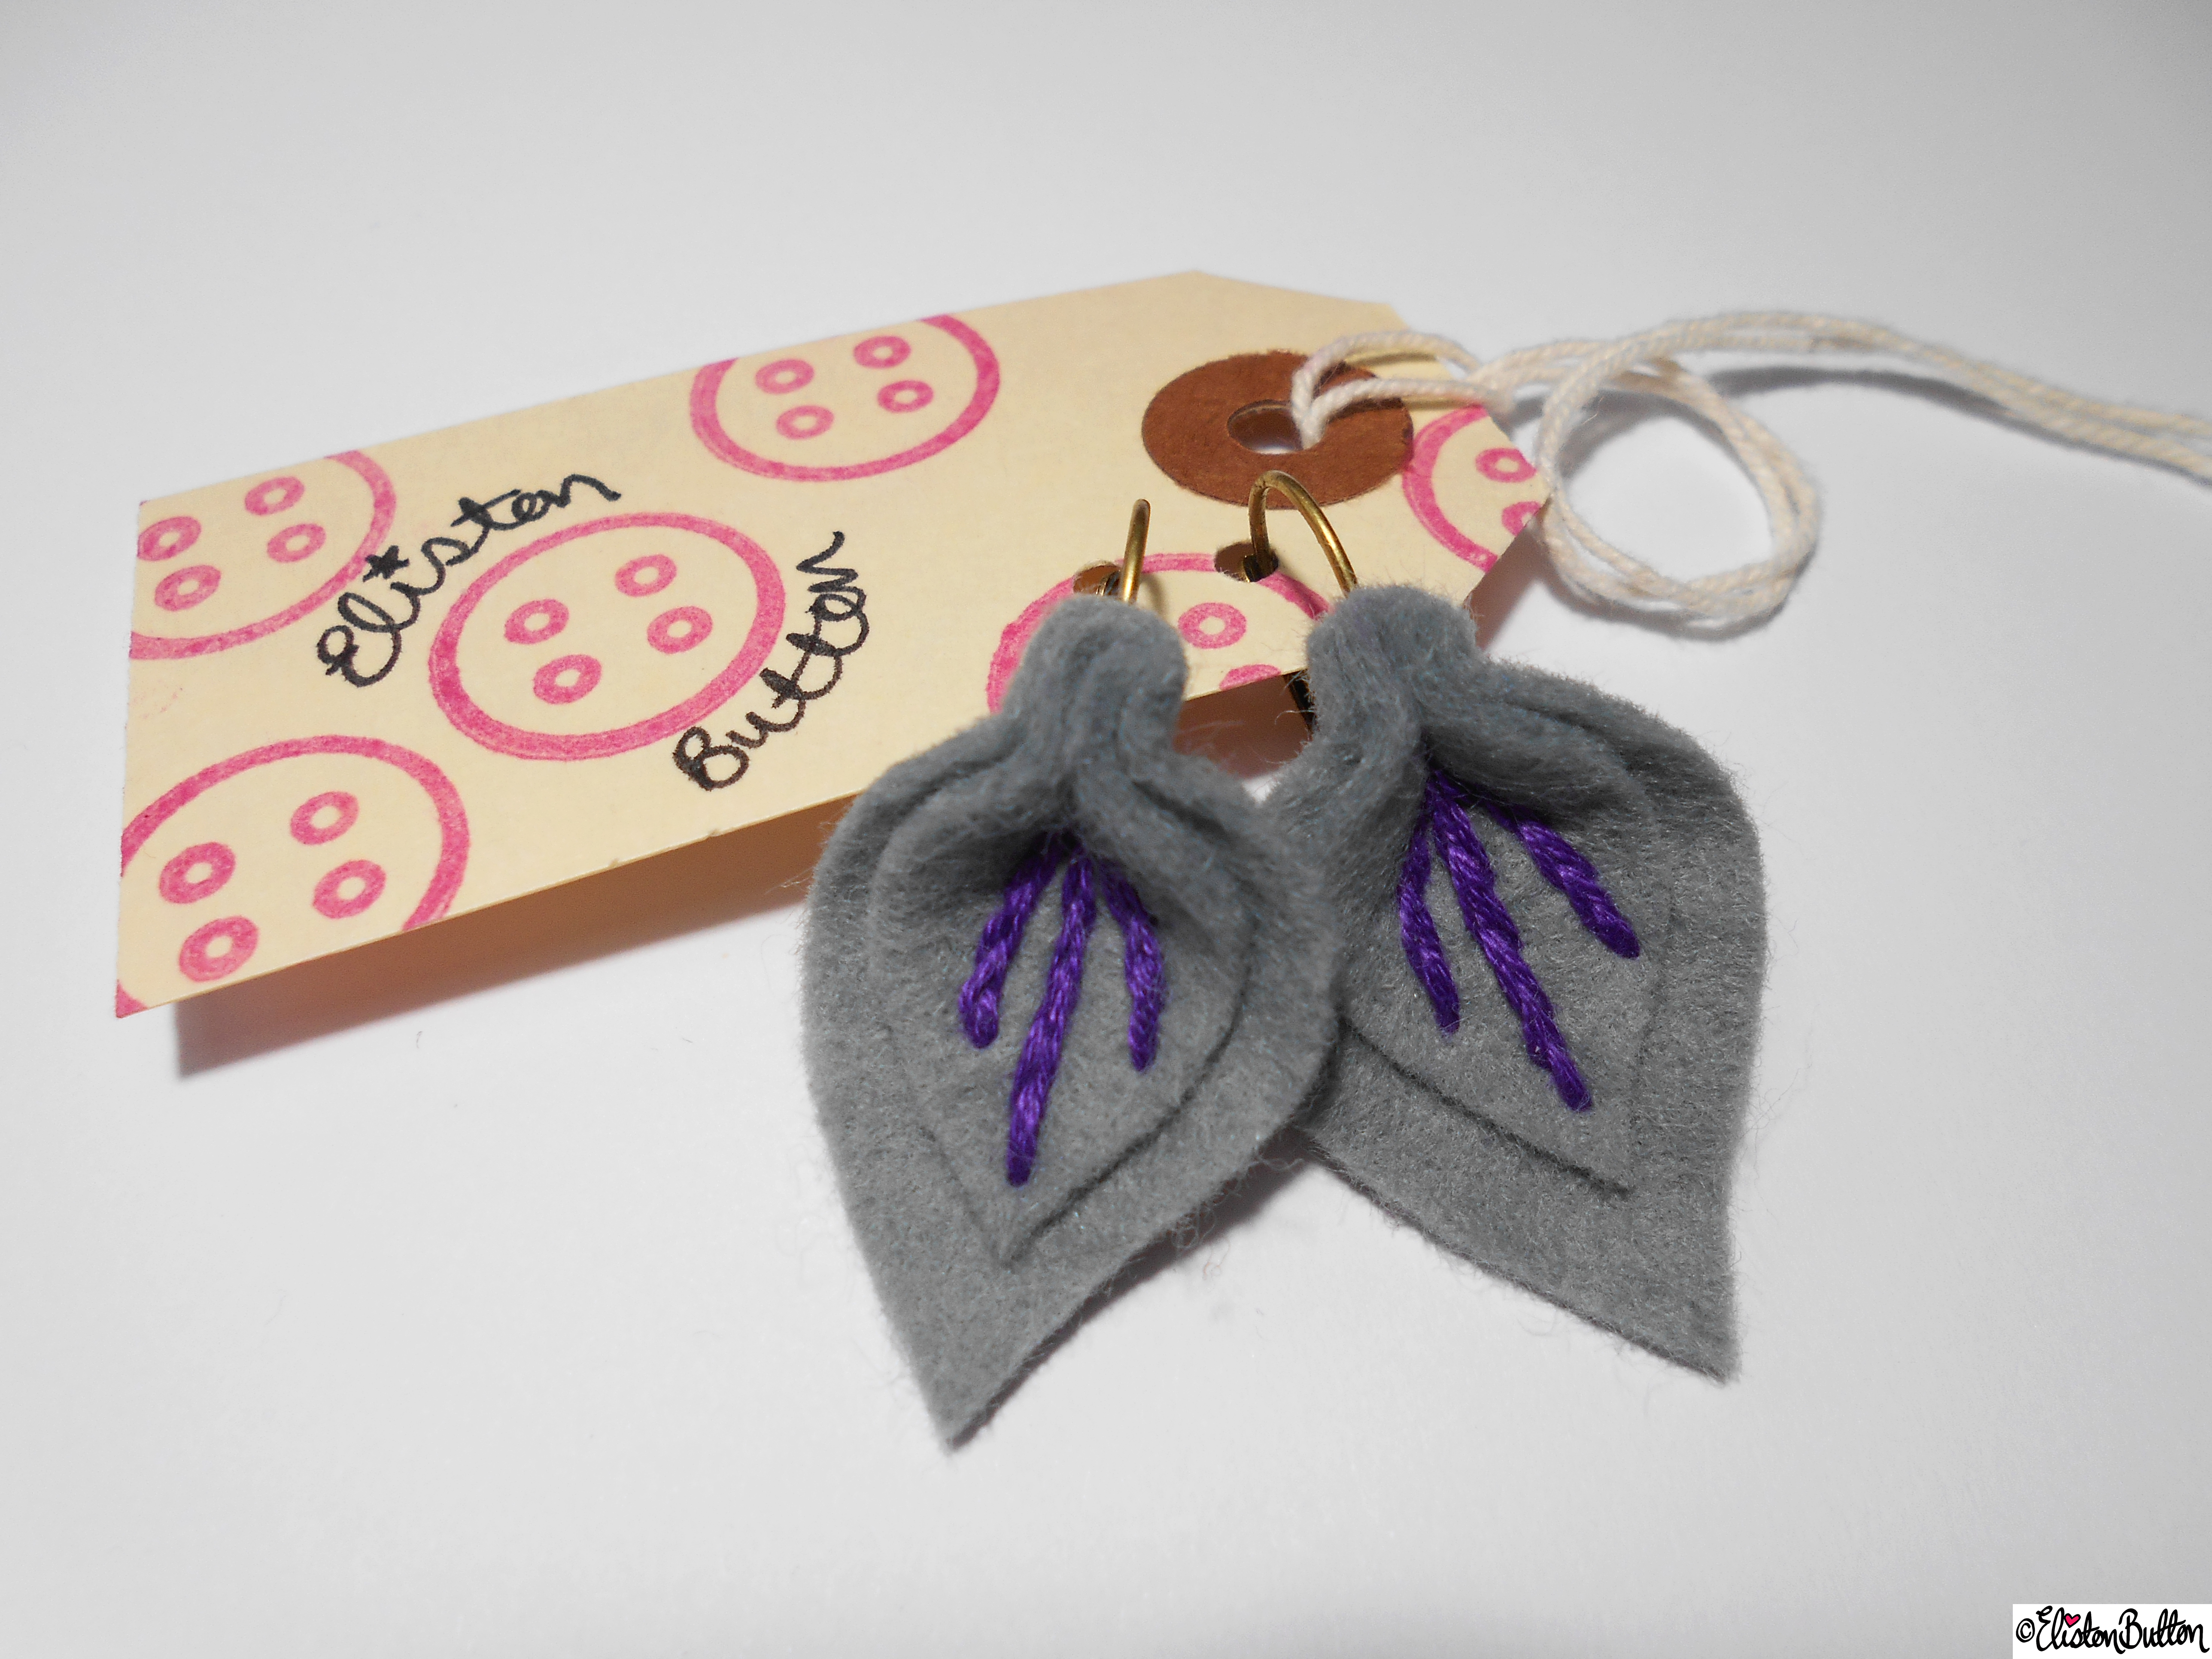 Slate and Berry Coloured Embroidered Felt Petal Earrings on Packaging Tag - Create 28 - No.2 - Embroidered Felt Petal Earrings at www.elistonbutton.com - Eliston Button - That Crafty Kid – Art, Design, Craft & Adventure.